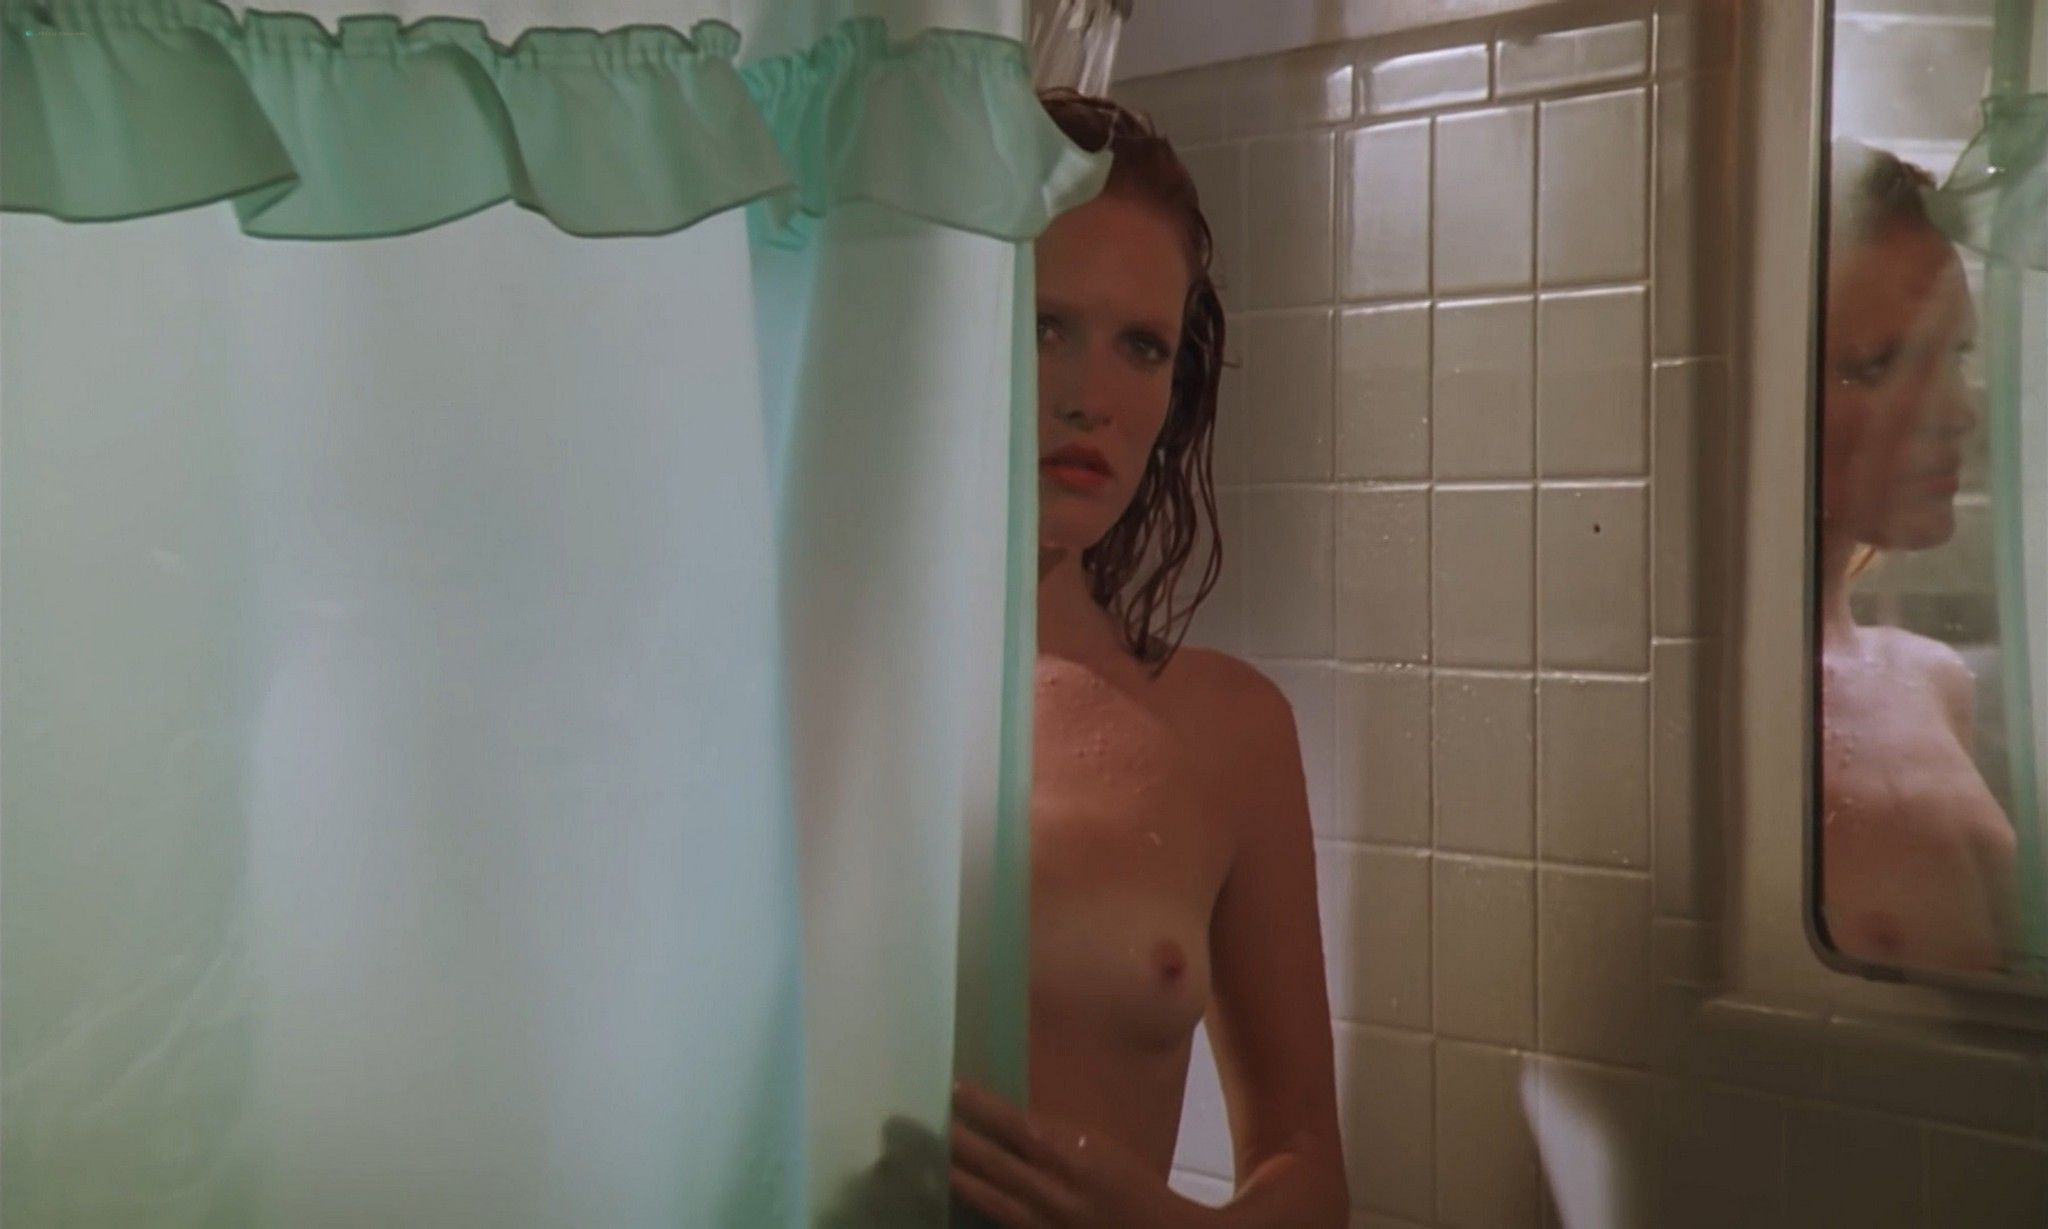 Victoria Prouty nude and sex in the shower American Rickshaw 1989 1080p BluRay 11